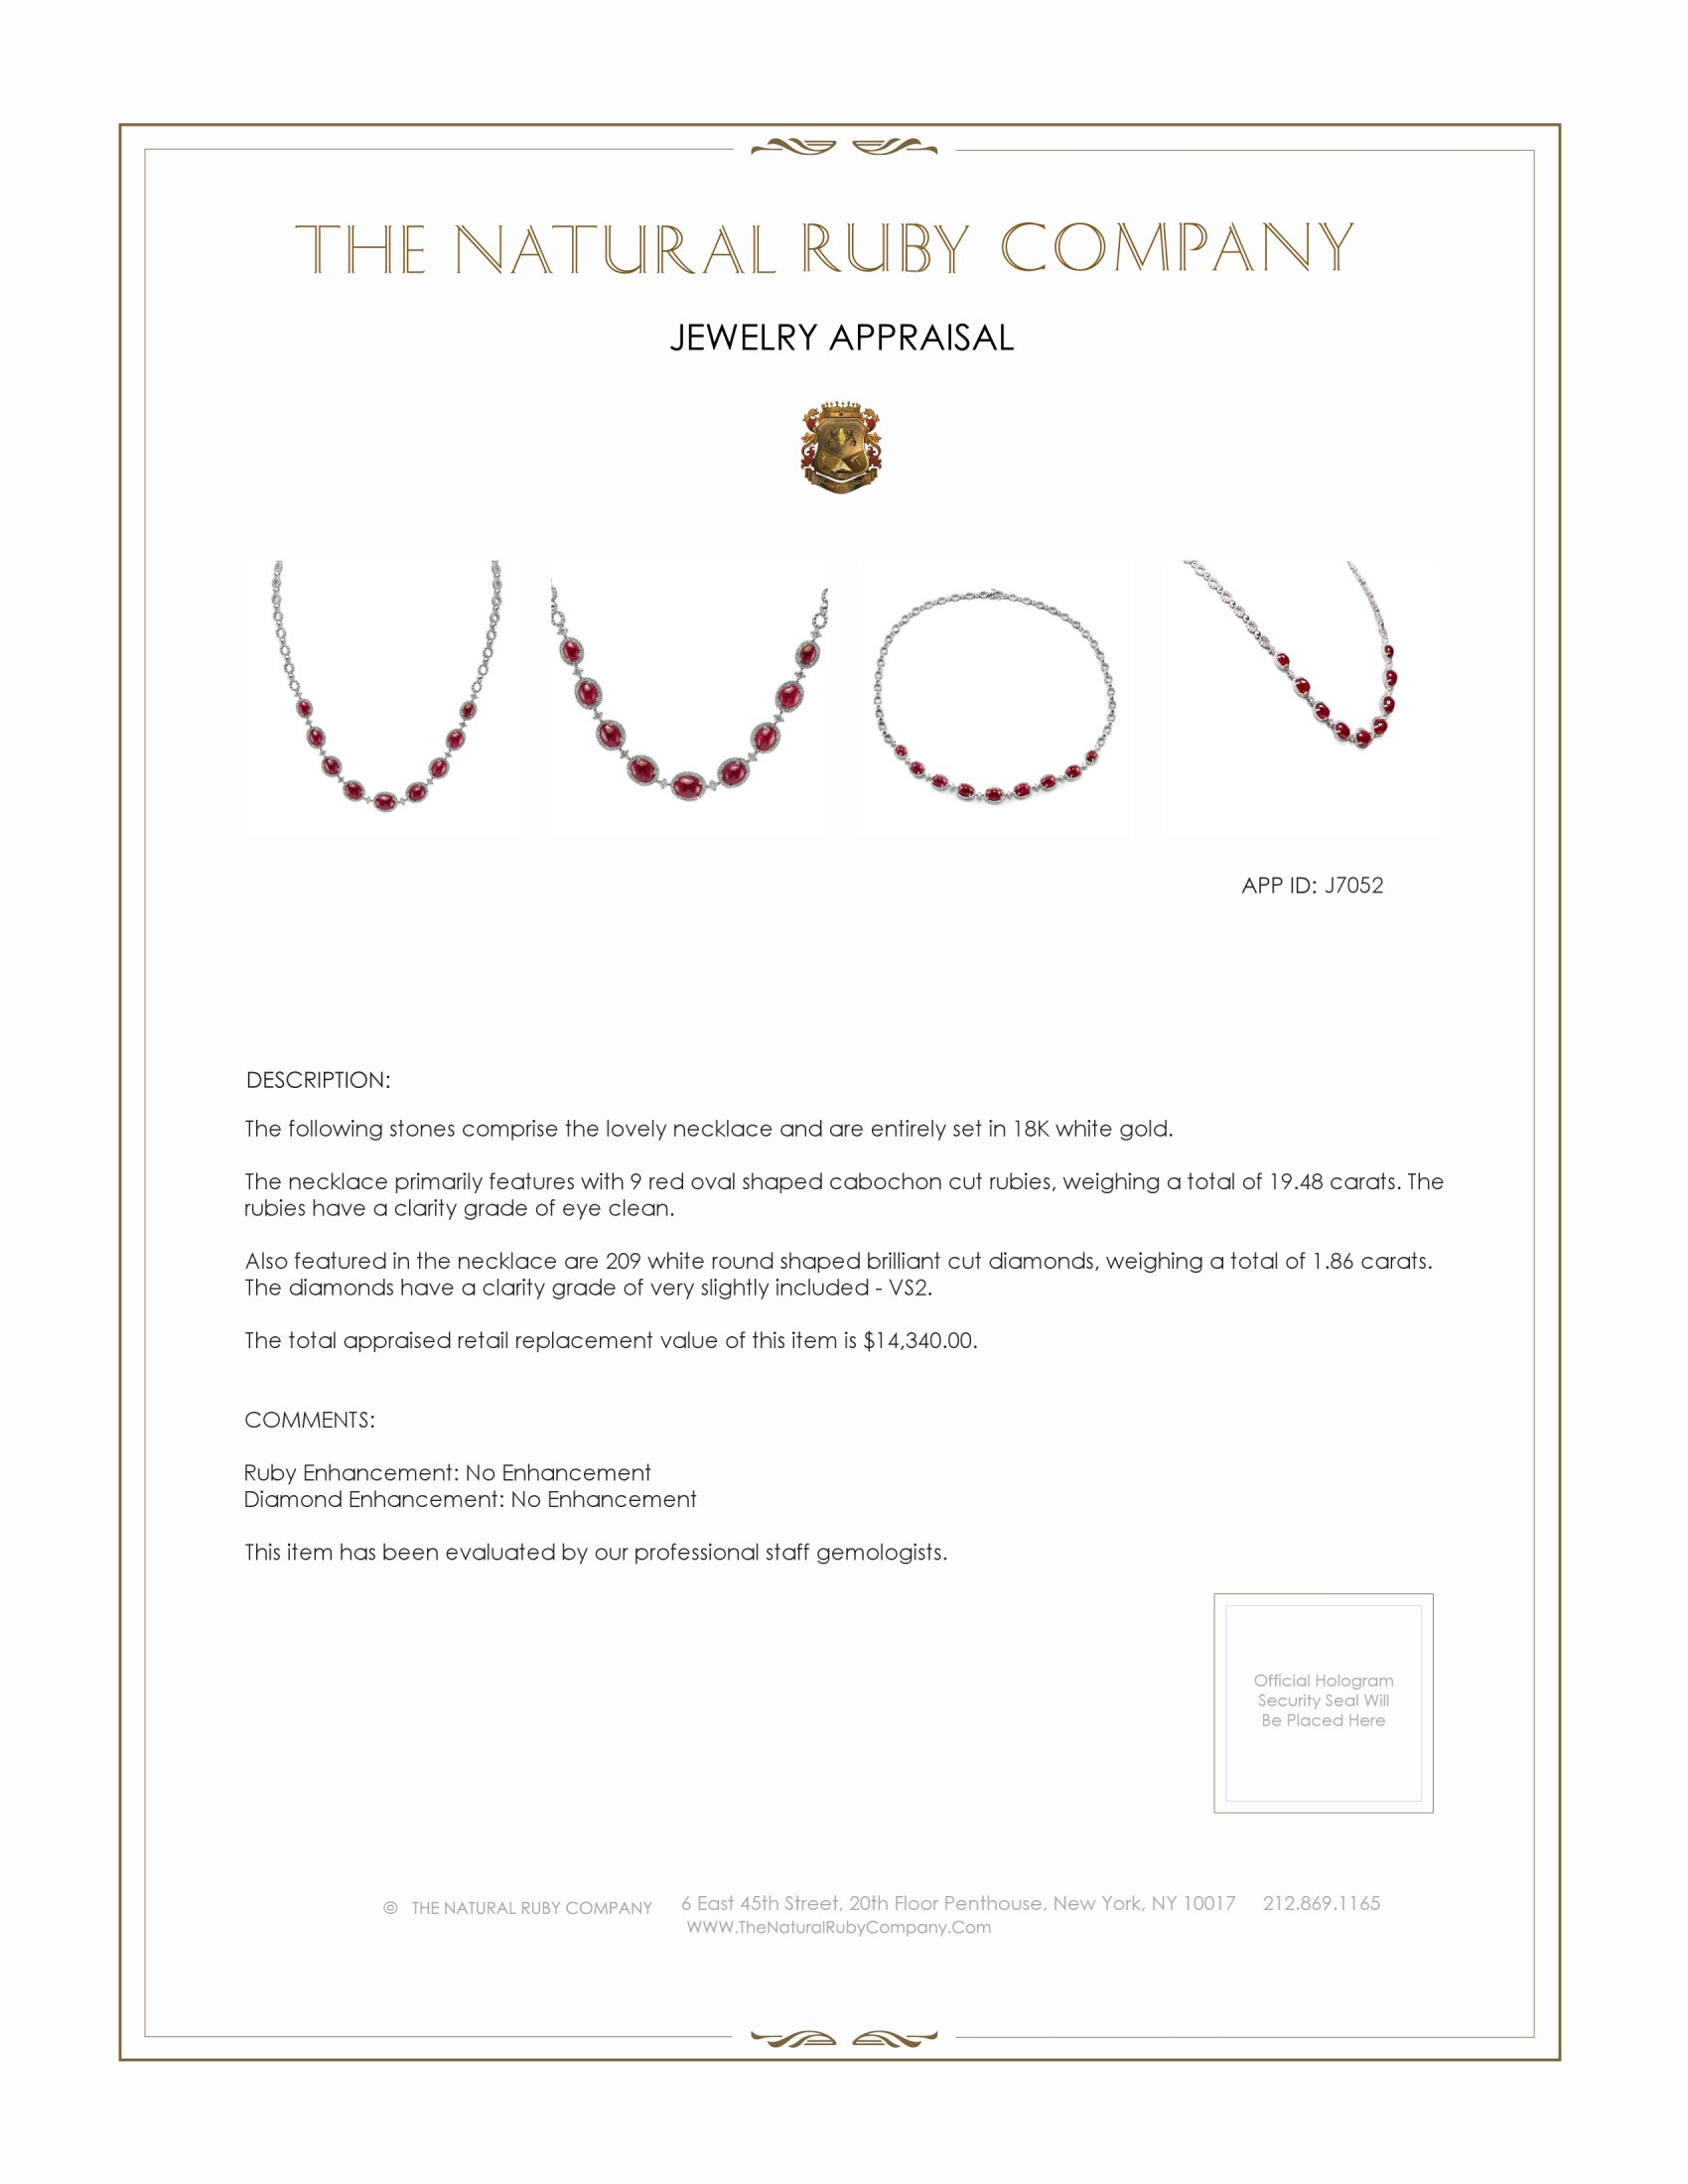 19.48ct Ruby Necklace Certification 2